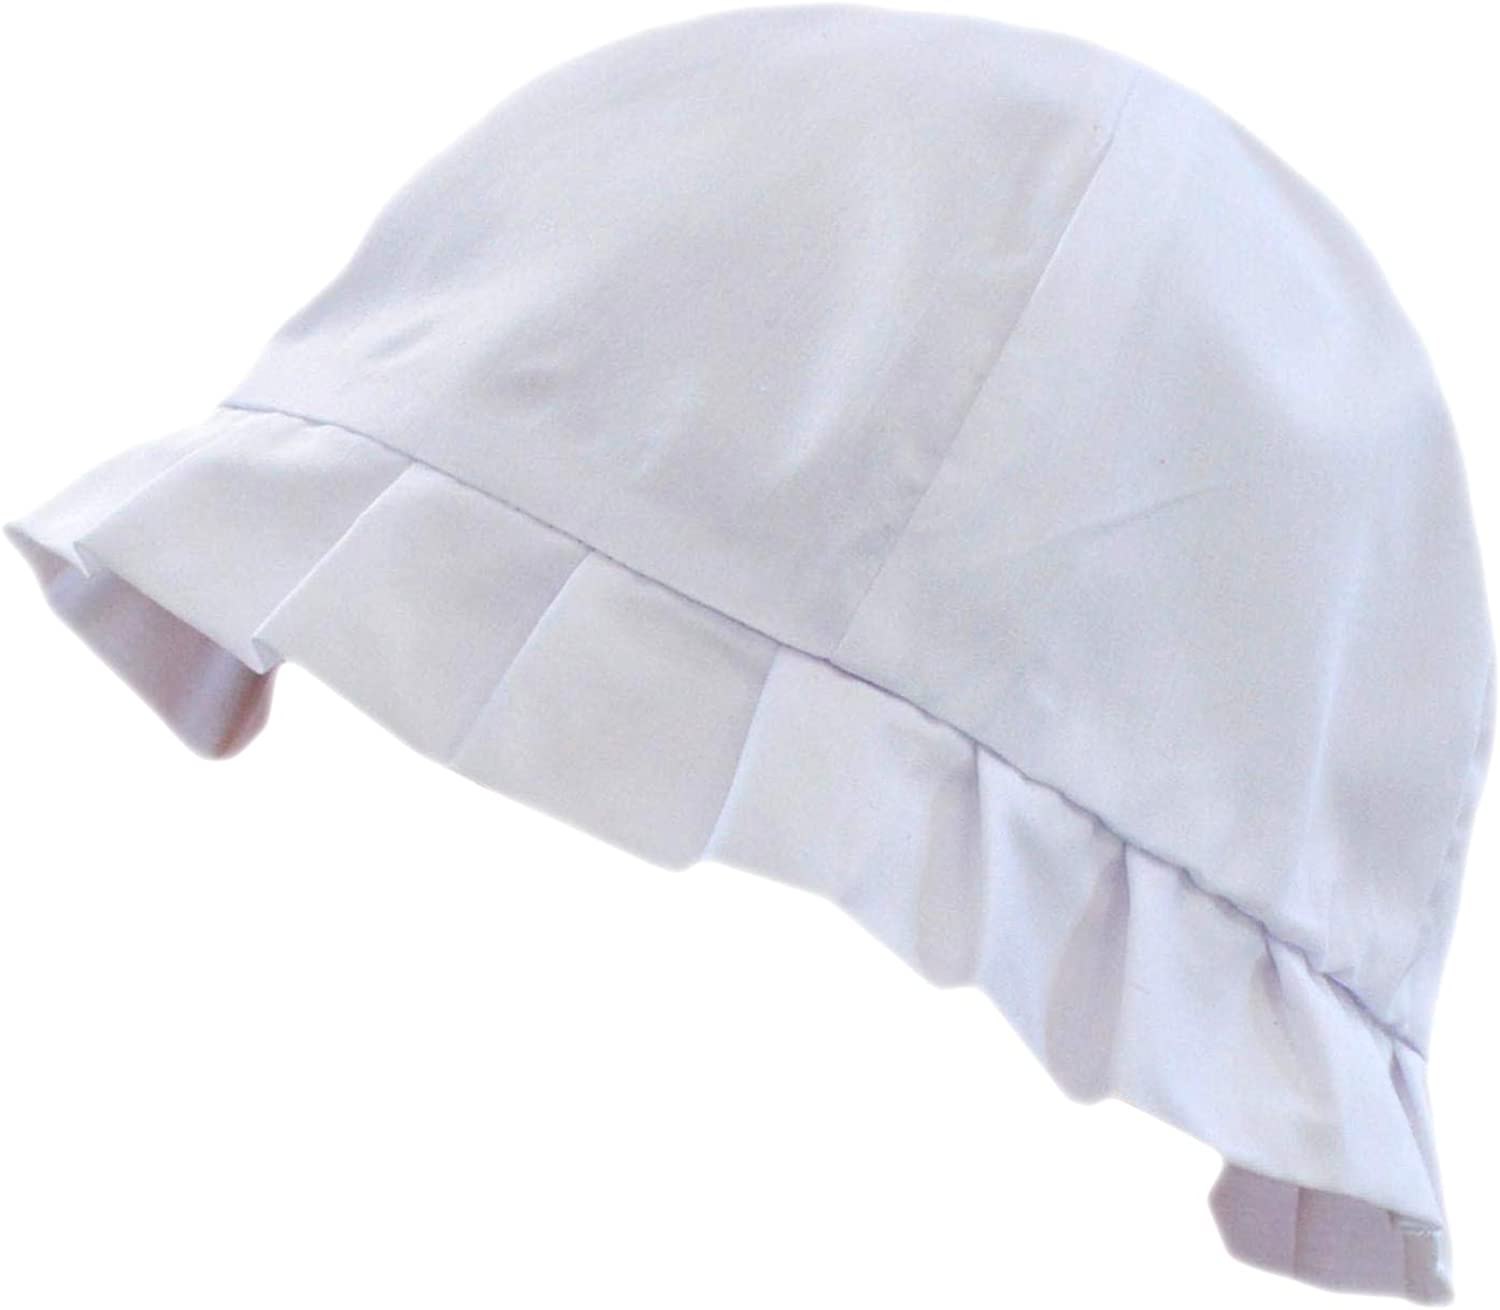 Baby Girls Sun Hat with Shiny Bow Summer Cotton Bucket Hats Boys Prince Embroidered Frilly Broderie Anglaise Bonnet Hat Tie Up Chin Strap 0-24 Months